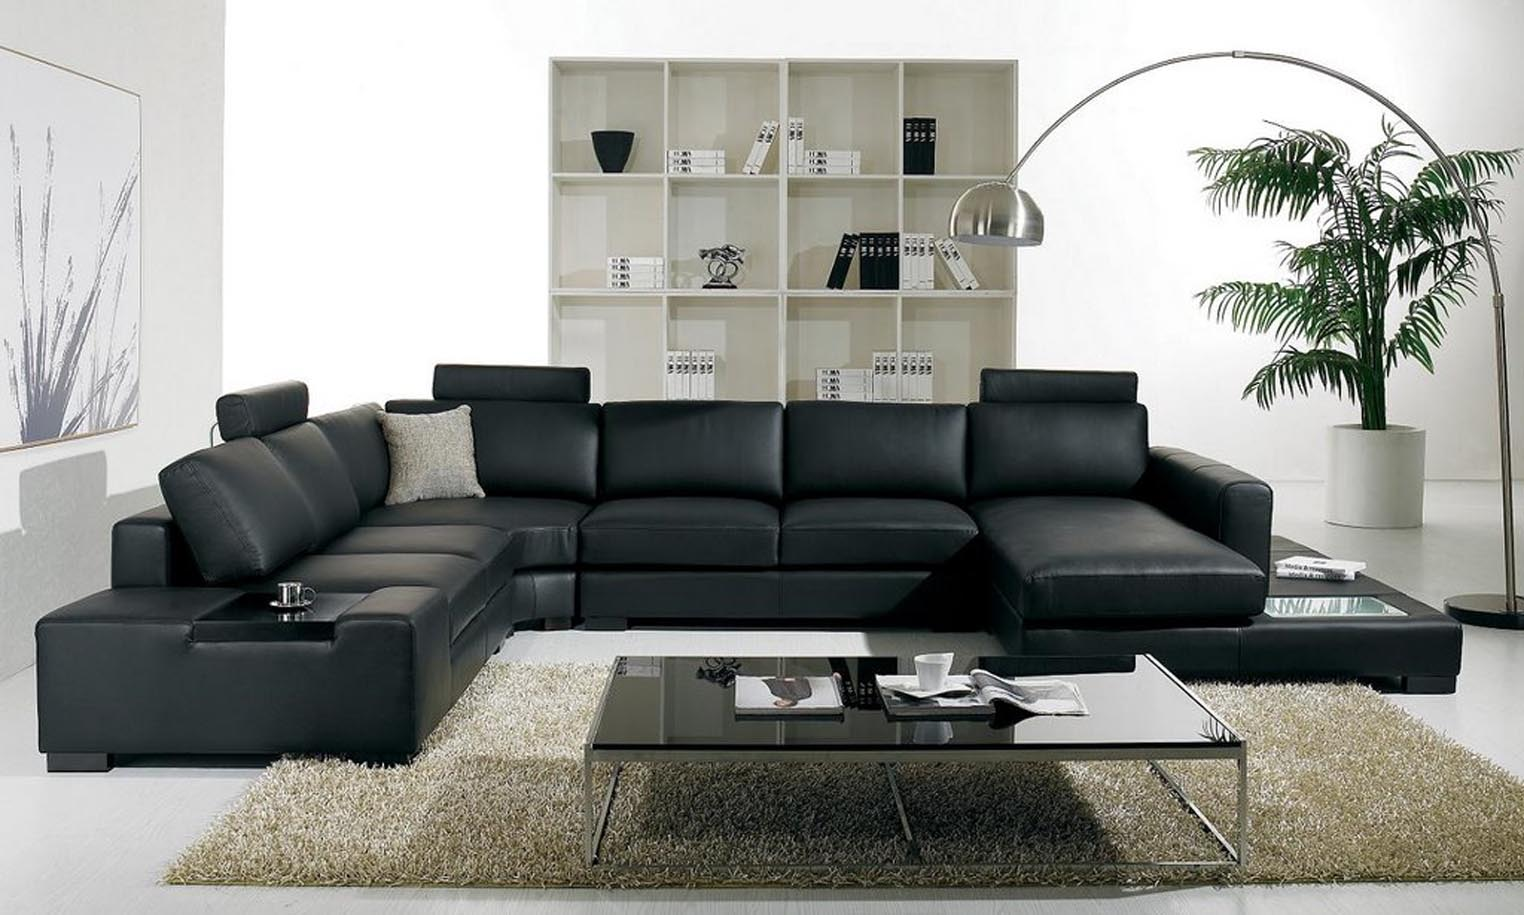 leather sofa set for living room colour schemes rooms green black sets inspiring ideas hgnv luxury sectional interior decoration with cool glass top coffee table